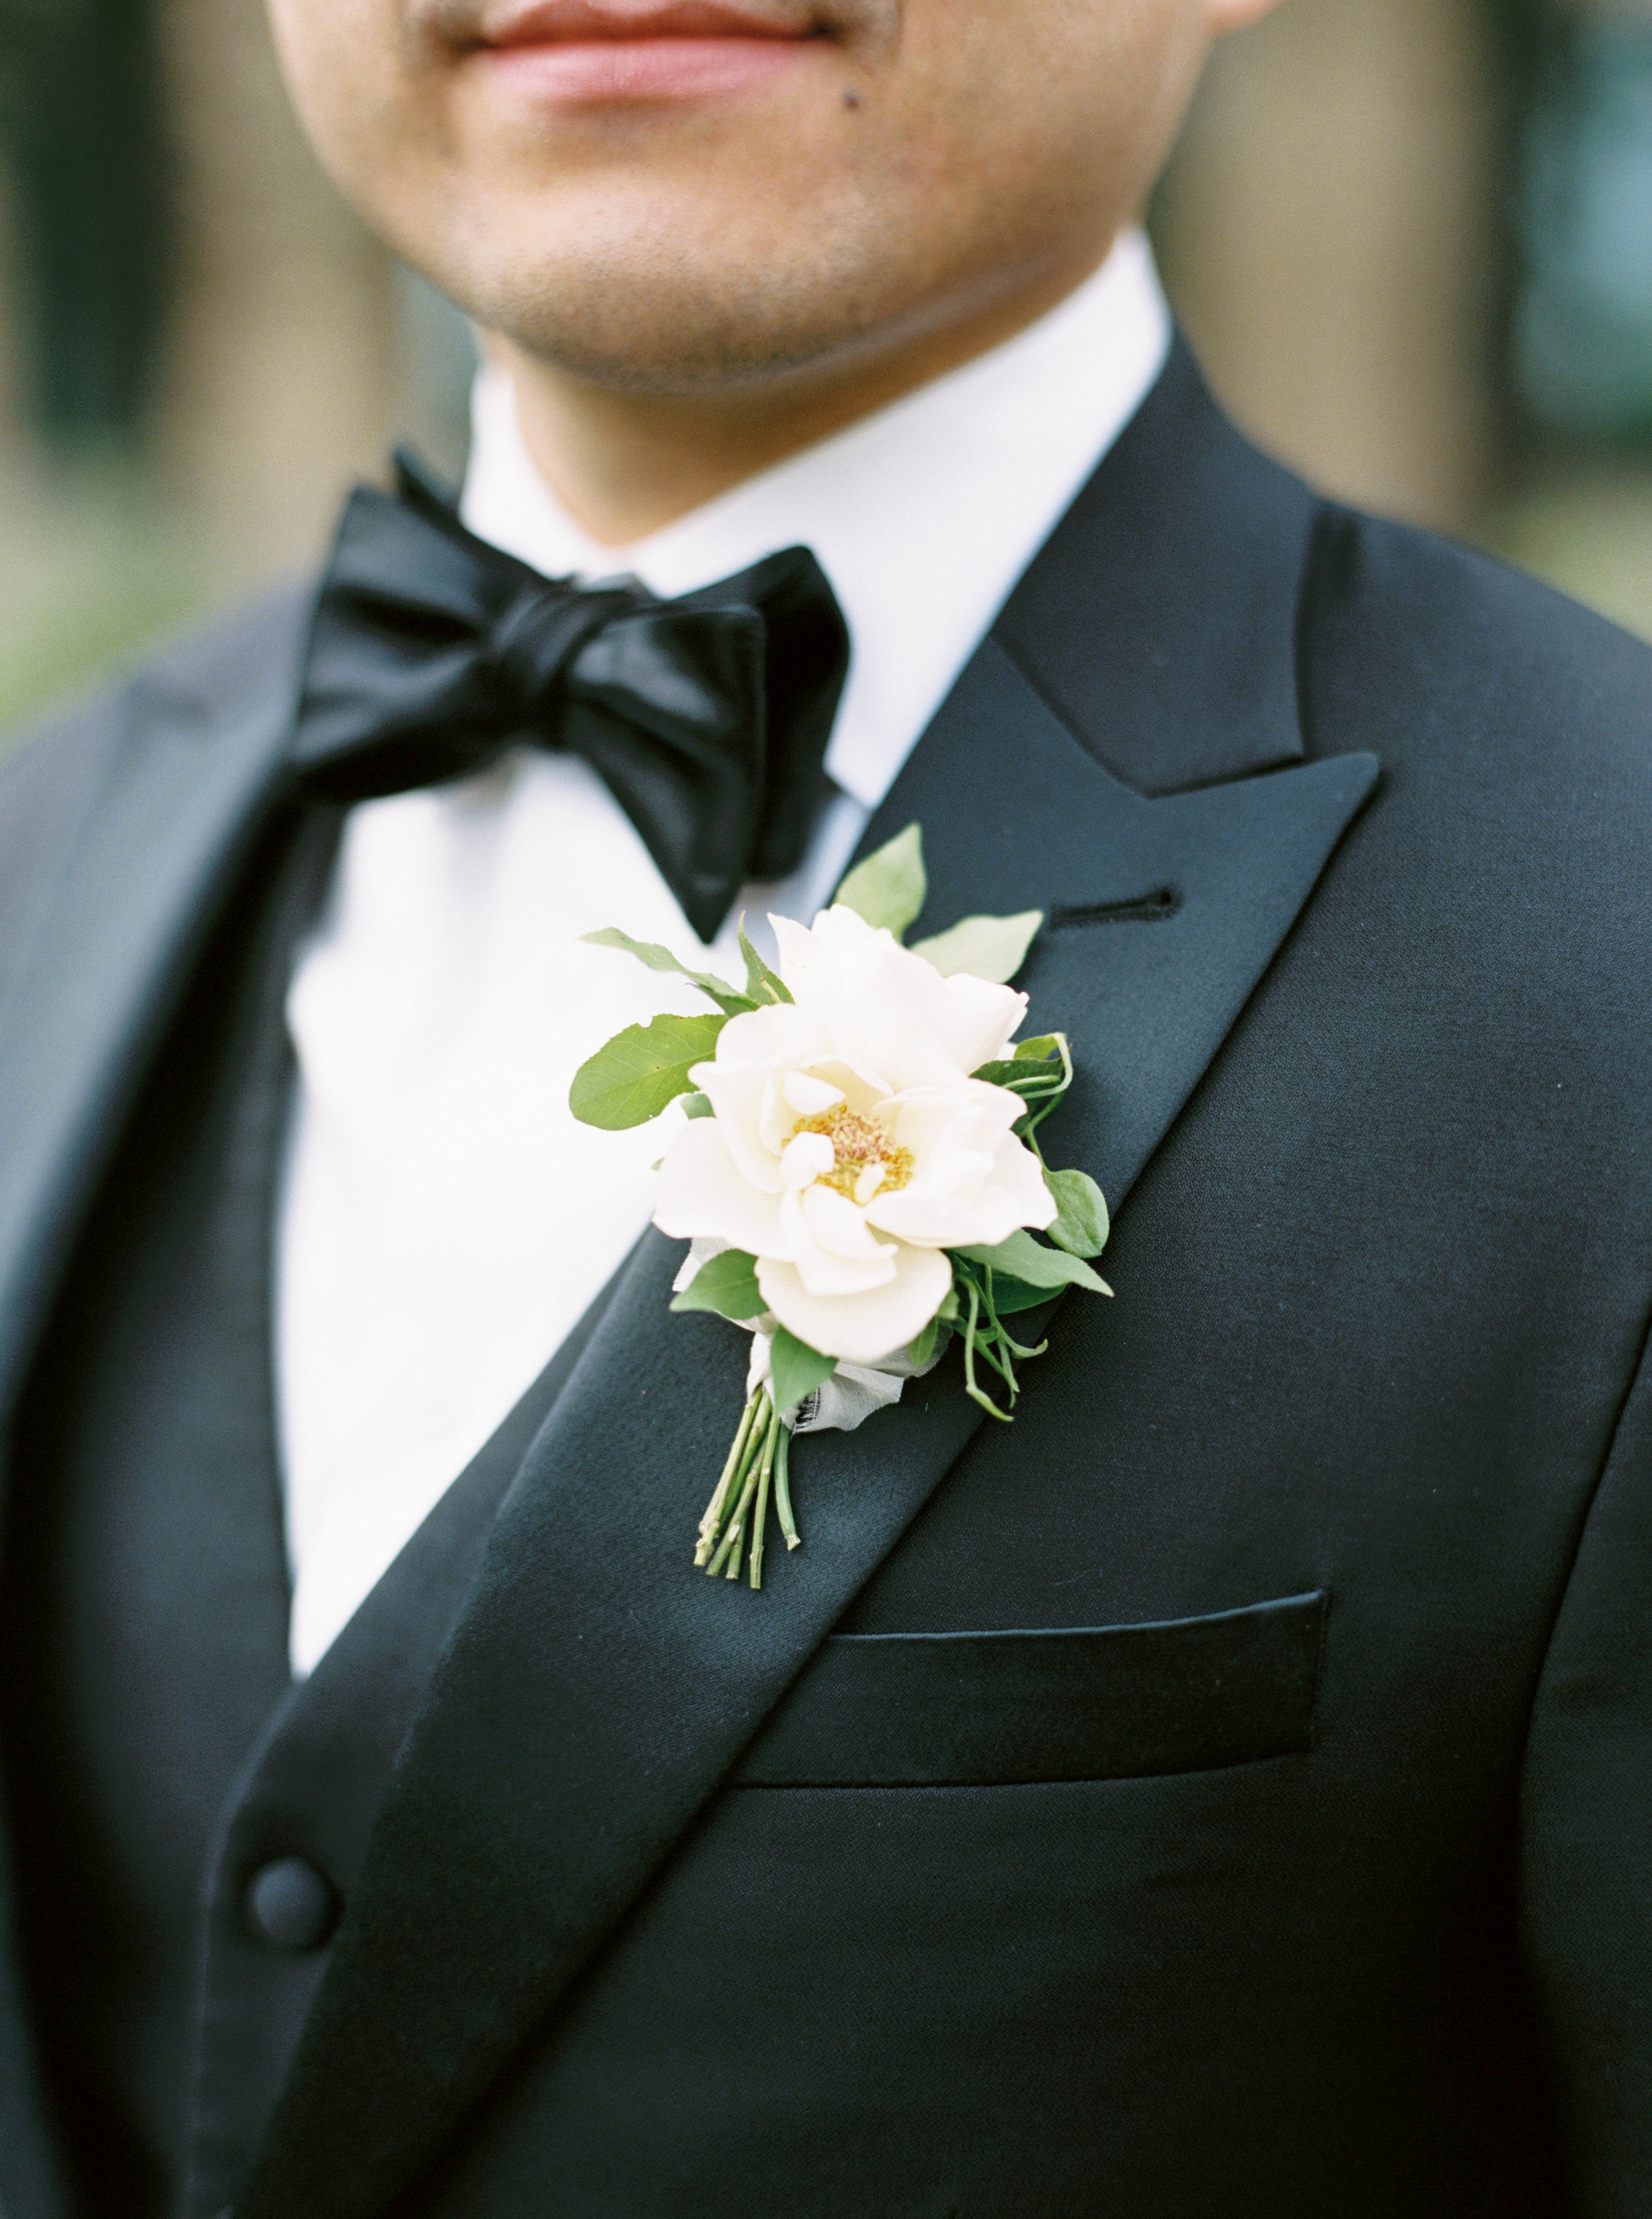 groom-boutonniere-with-white-flower.jpg